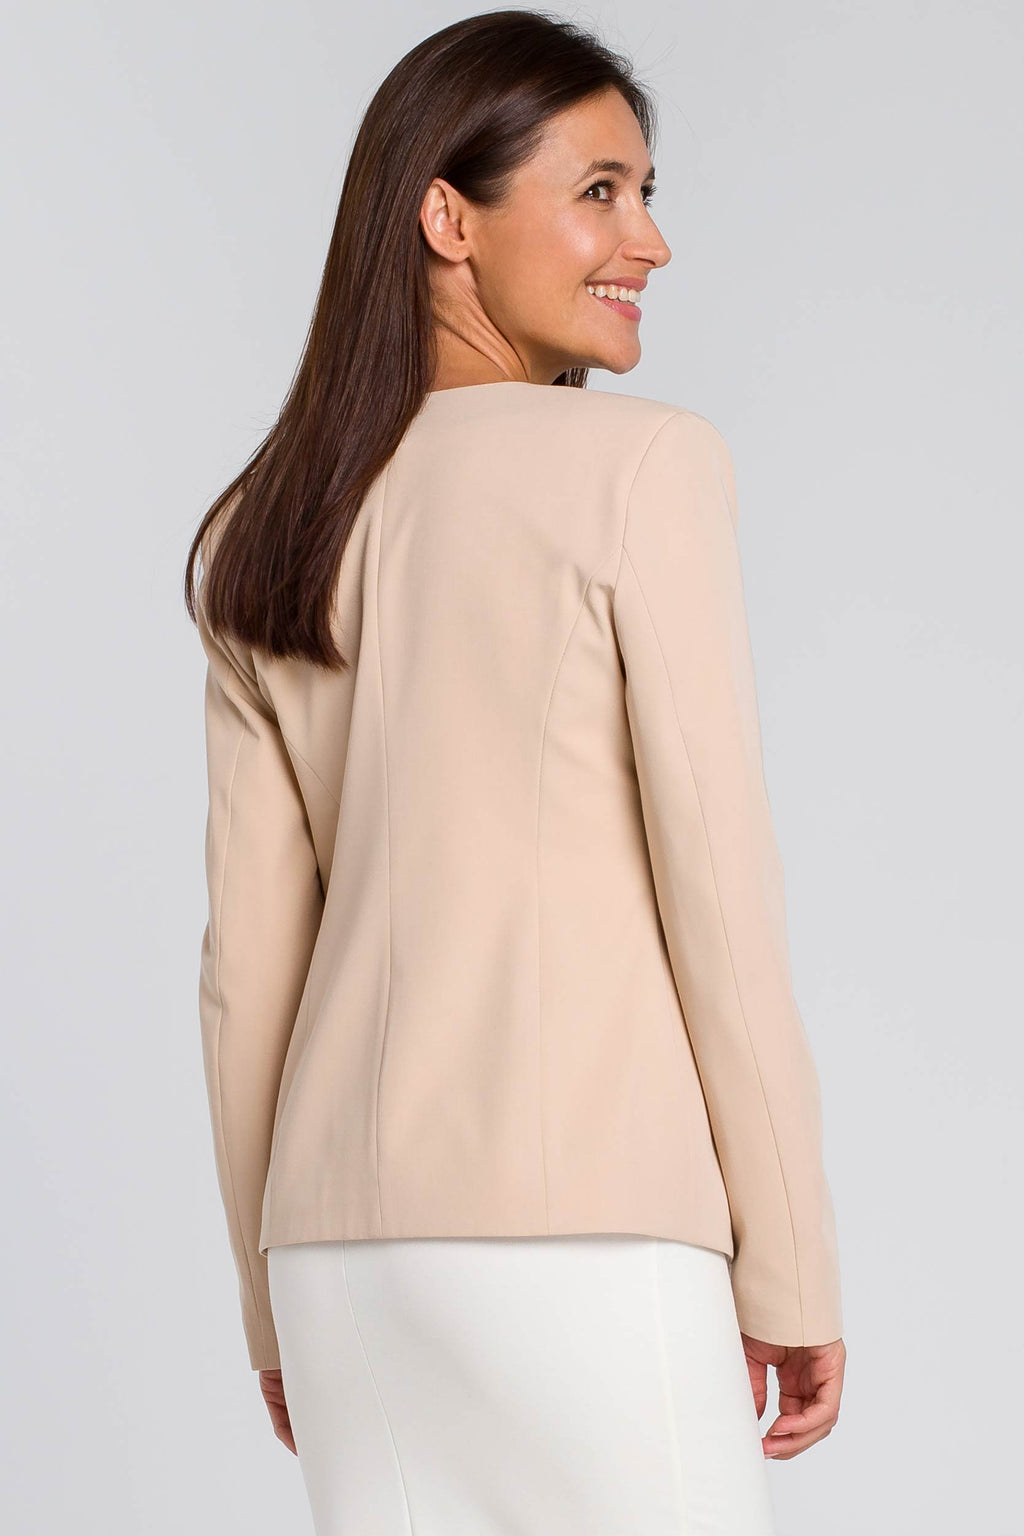 Beige Tailored Blazer With Zips - So Chic Boutique